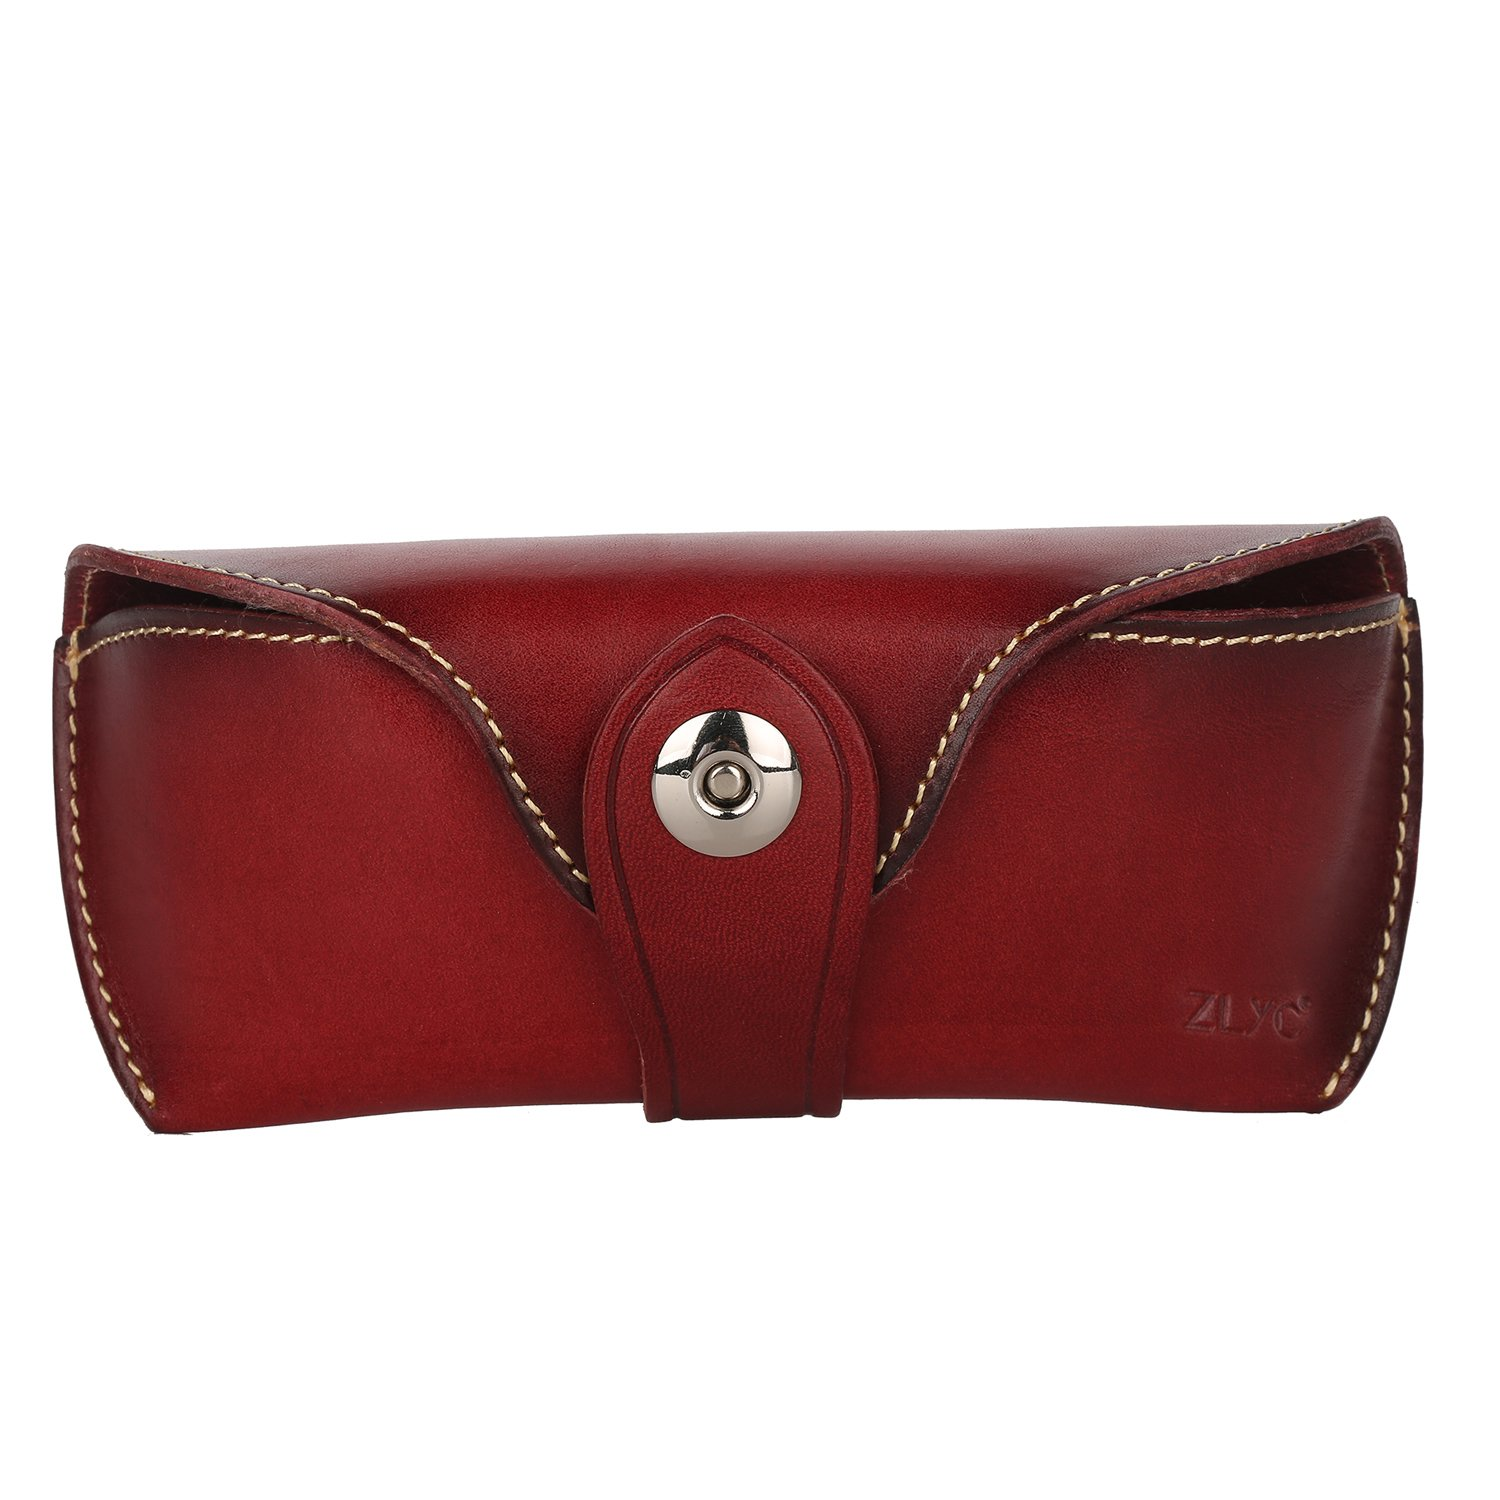 ZLYC Vegetable Tanned Leather Buckle Closure Hard Eyeglass Case Sunglasses Holder, Dark Red LY-YJ-03-DR_CA